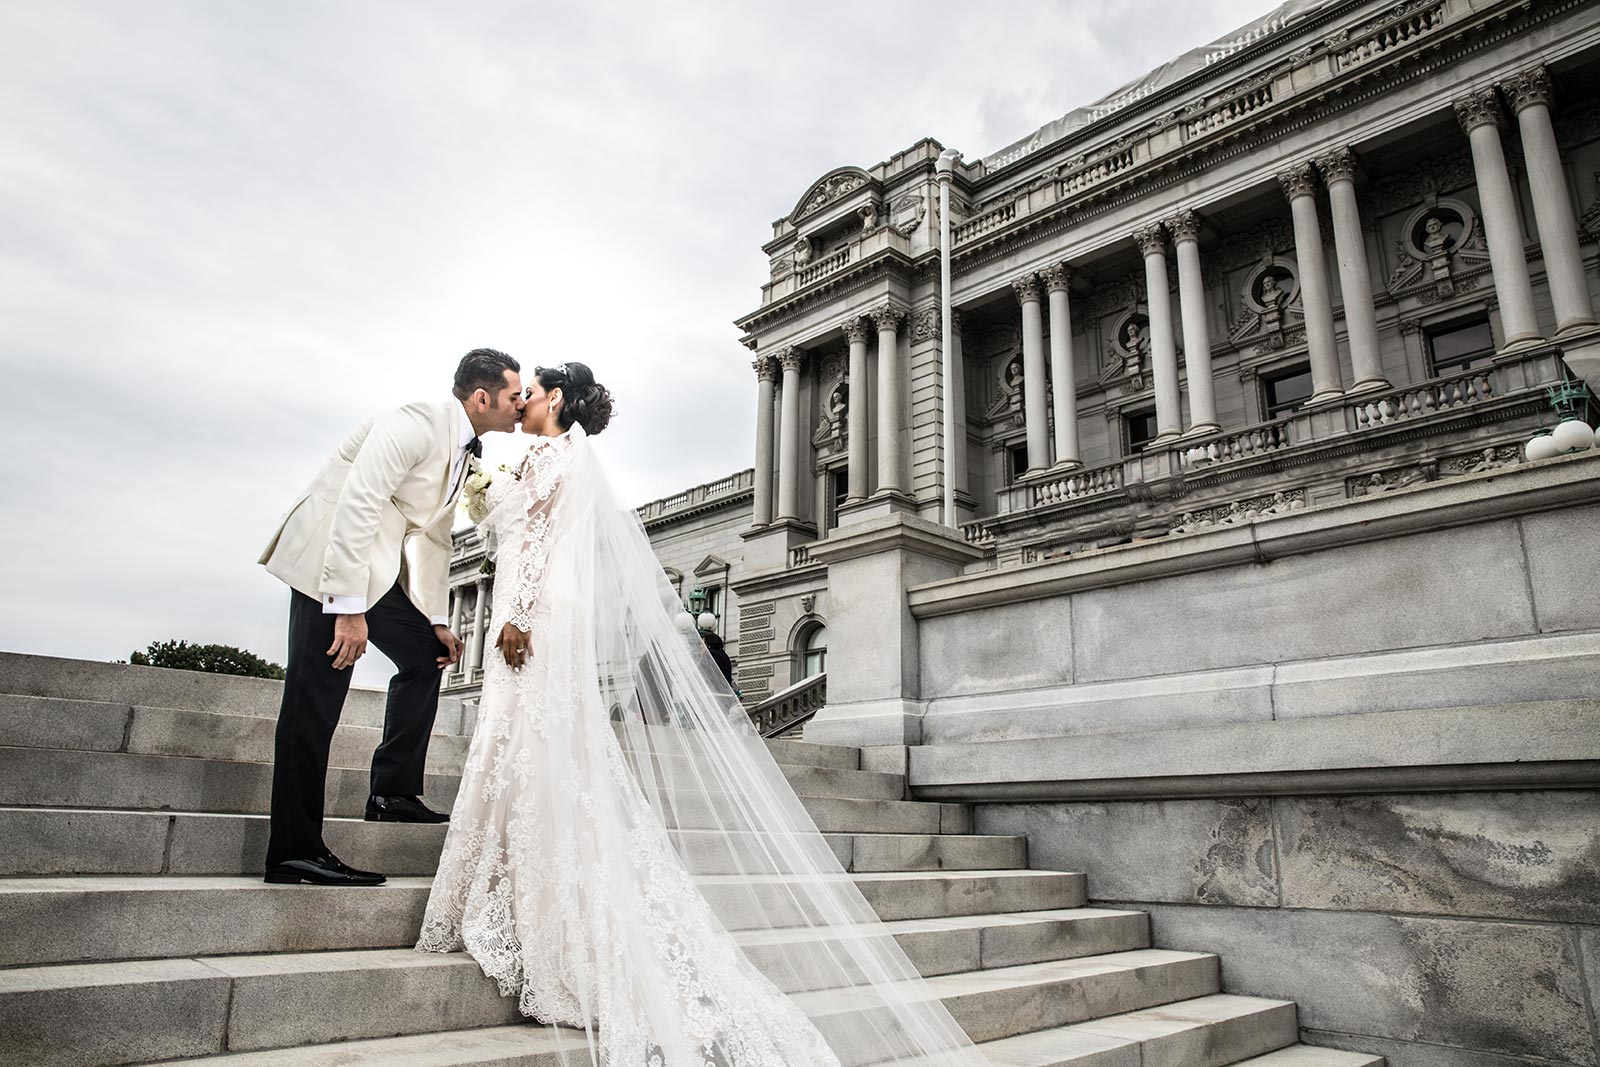 Wedding Photography at the library of congress - Washington DC